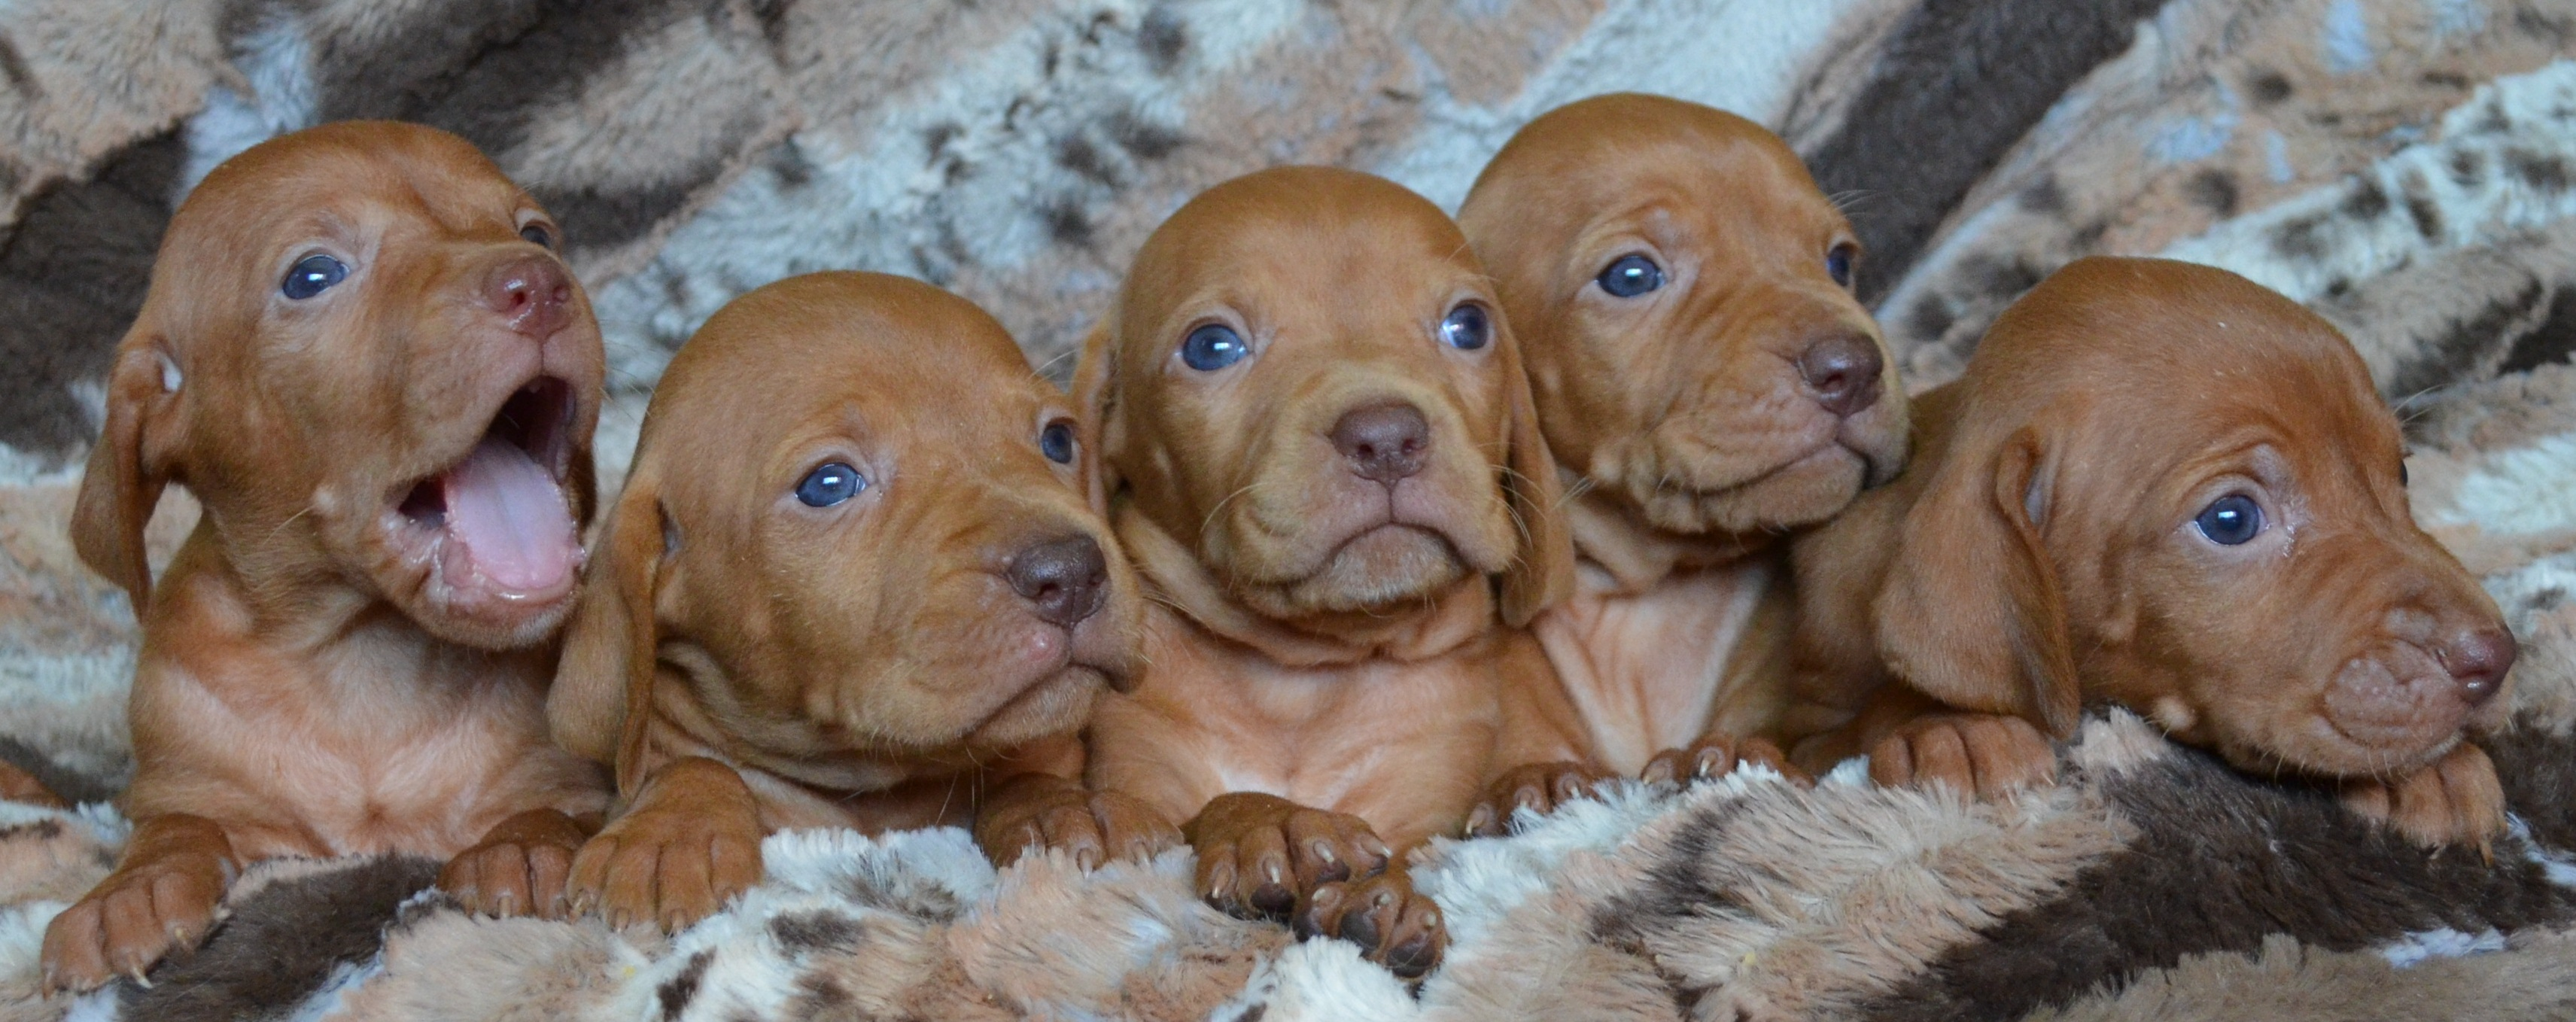 Cute Puppies For Sale World Of Animal